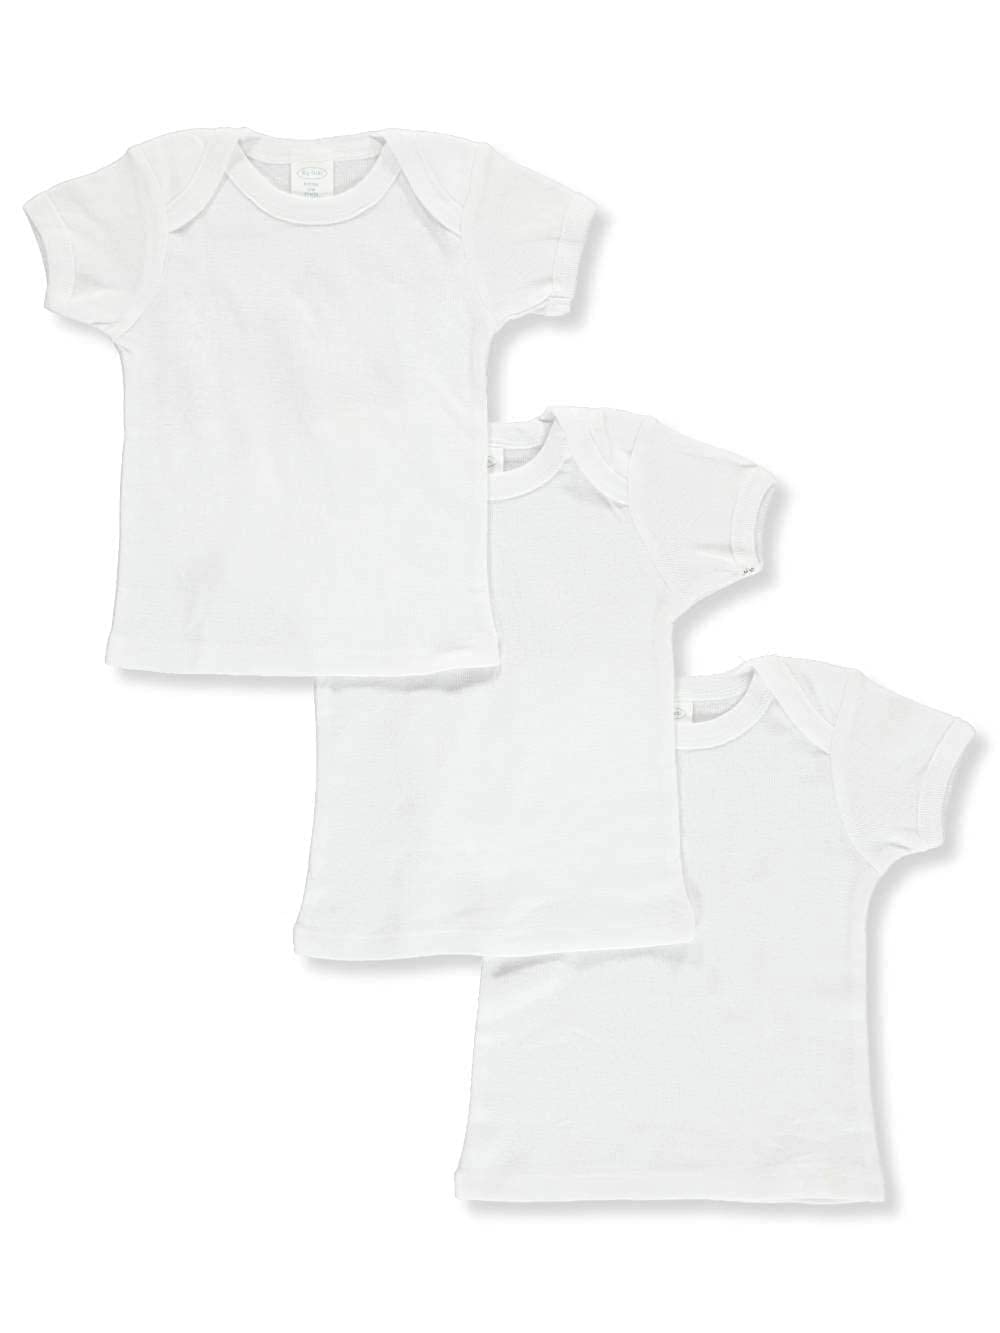 Big Oshi Unisex Baby 3-Pack T-Shirts